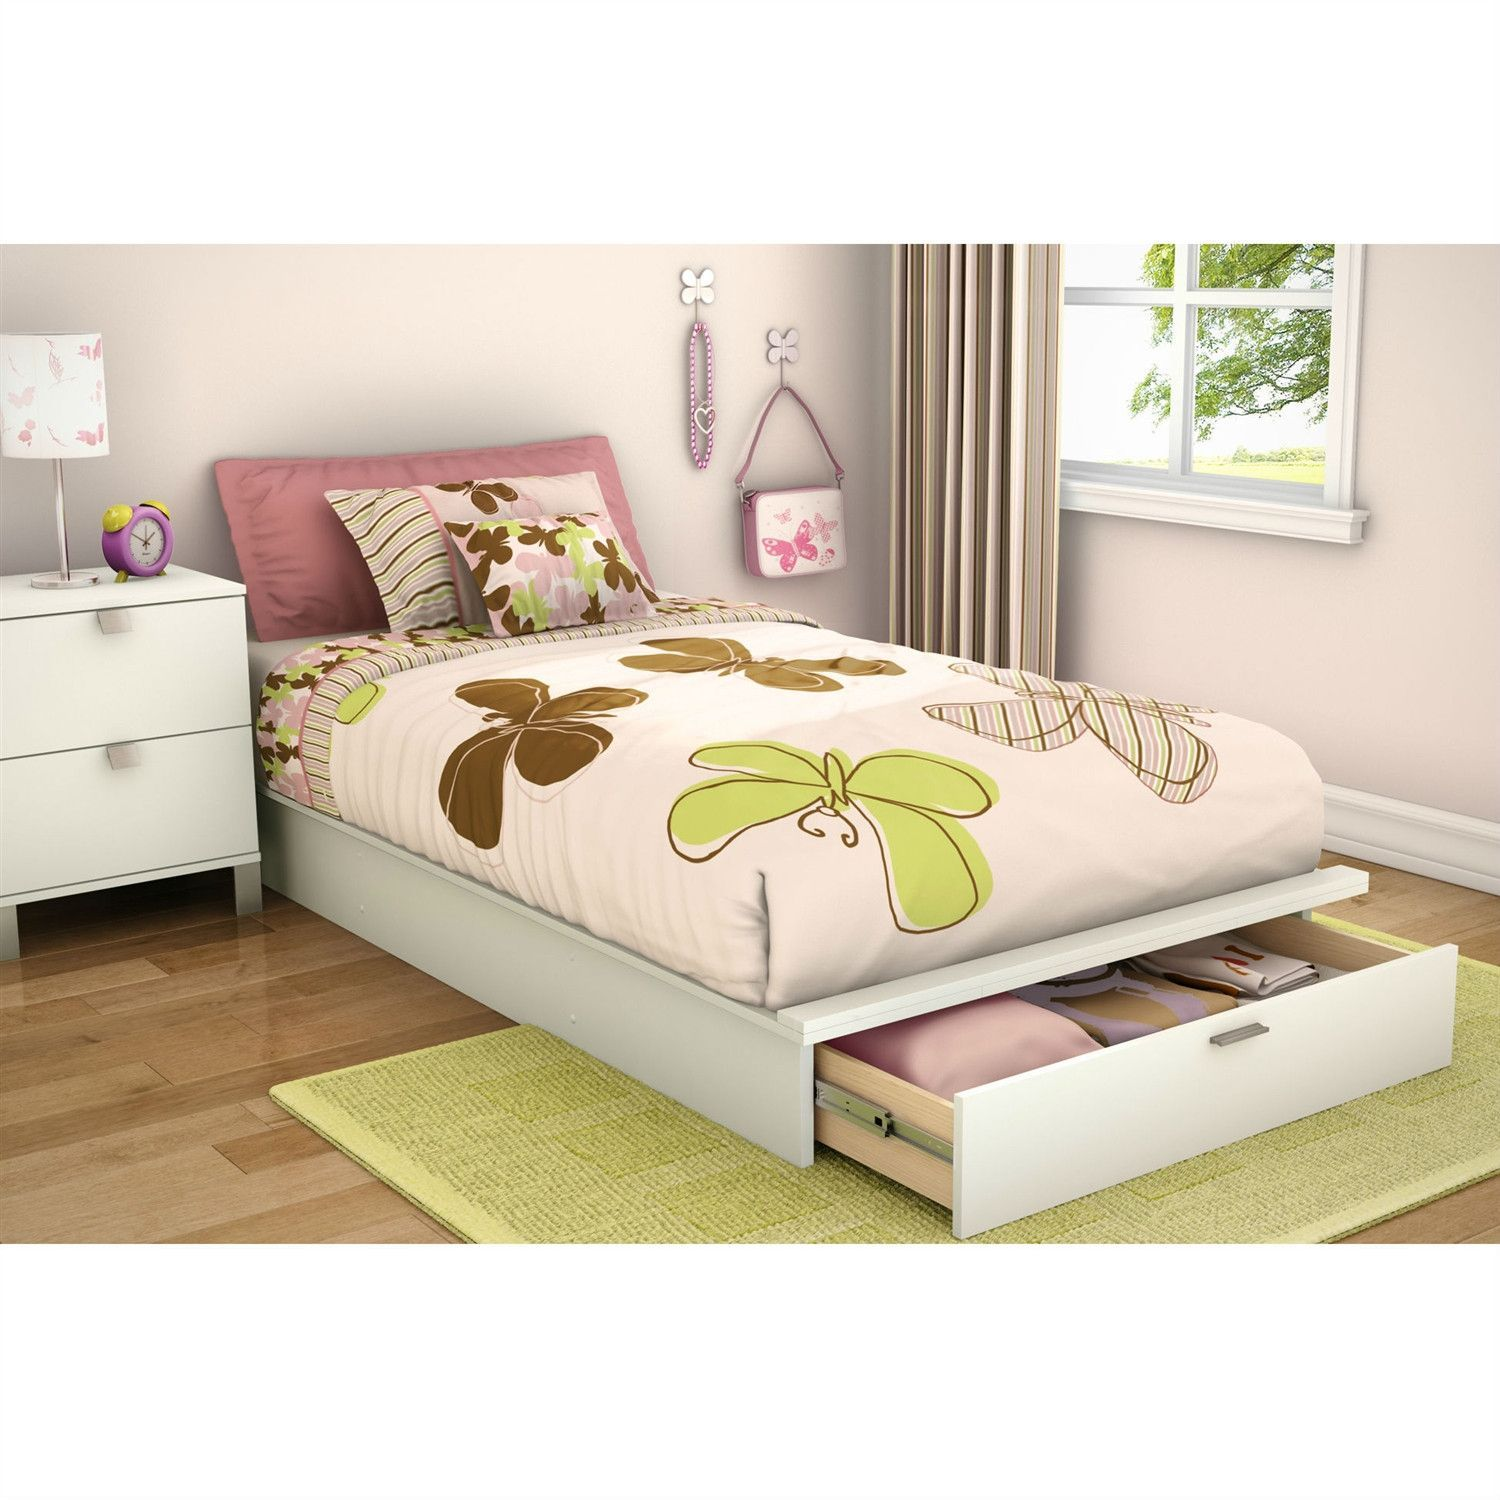 Twin size Contemporary Platform Bed with Storage Drawer in